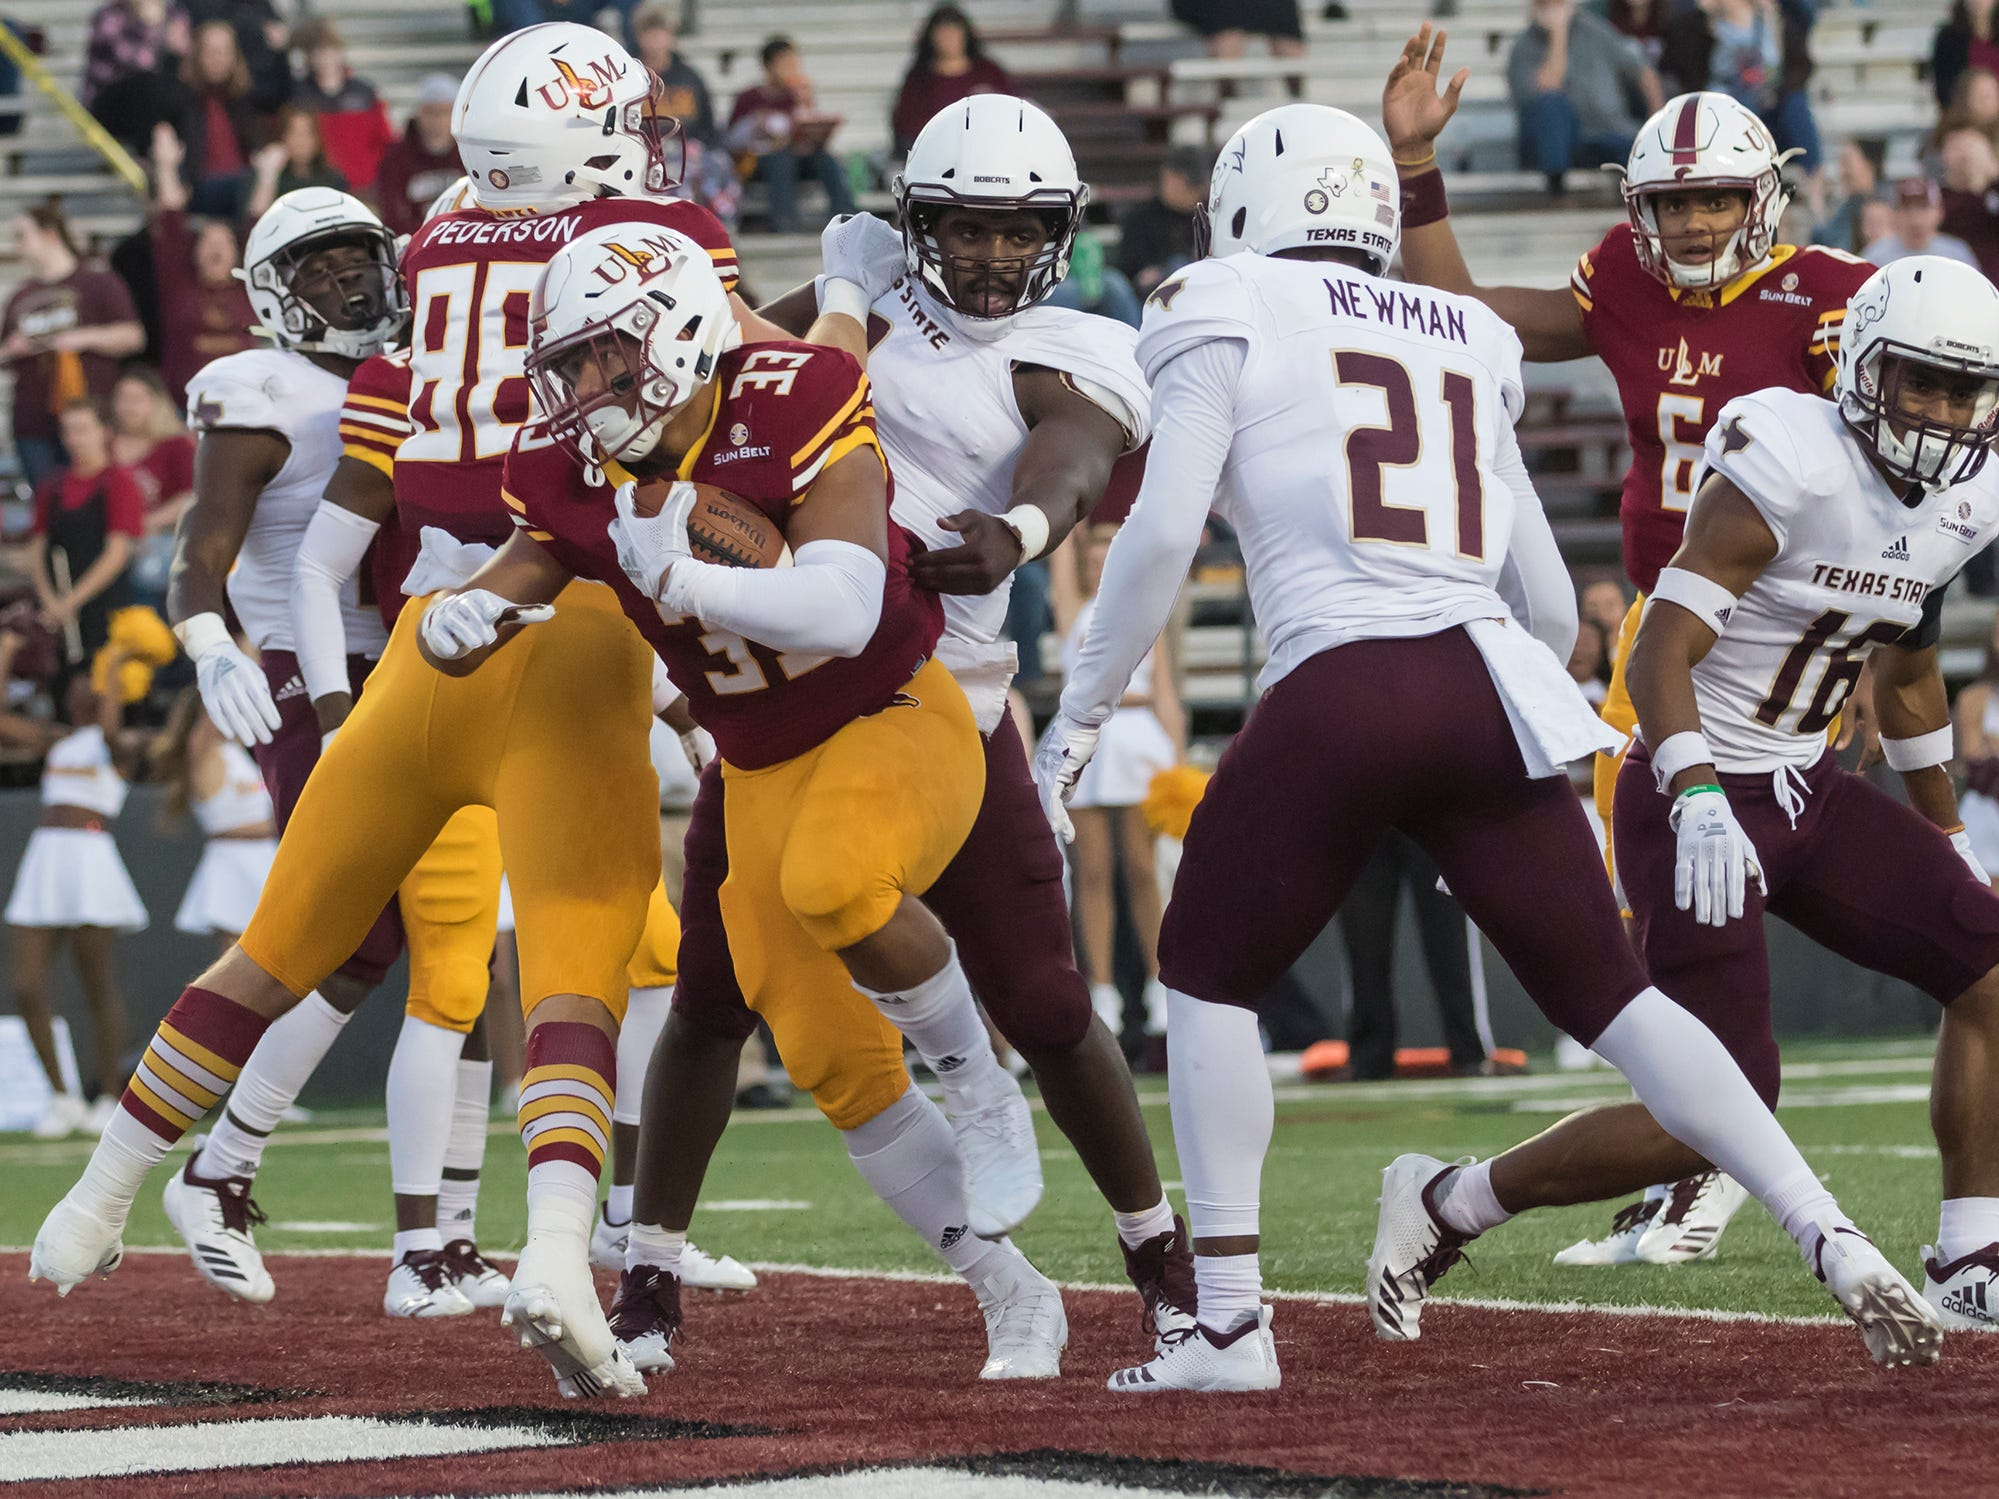 University of Louisiana at Monroe's Austin Vaughn (33) runs the ball in for ULM's first touchdown of game against Texas State University at Malone Stadium in Monroe, La. on Oct. 20.